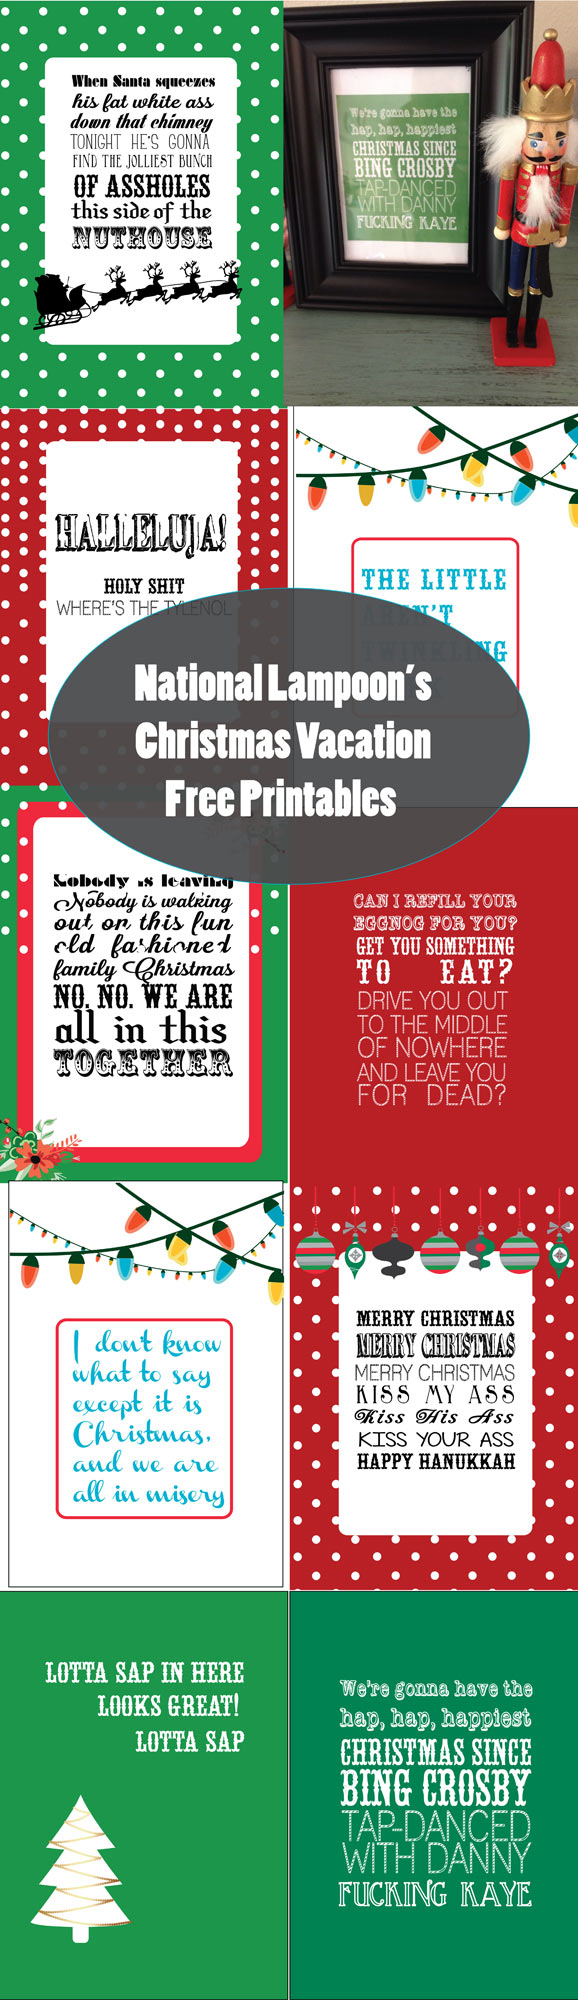 Quotes From Christmas Vacation.National Lampoon S Christmas Vacation Free Printables